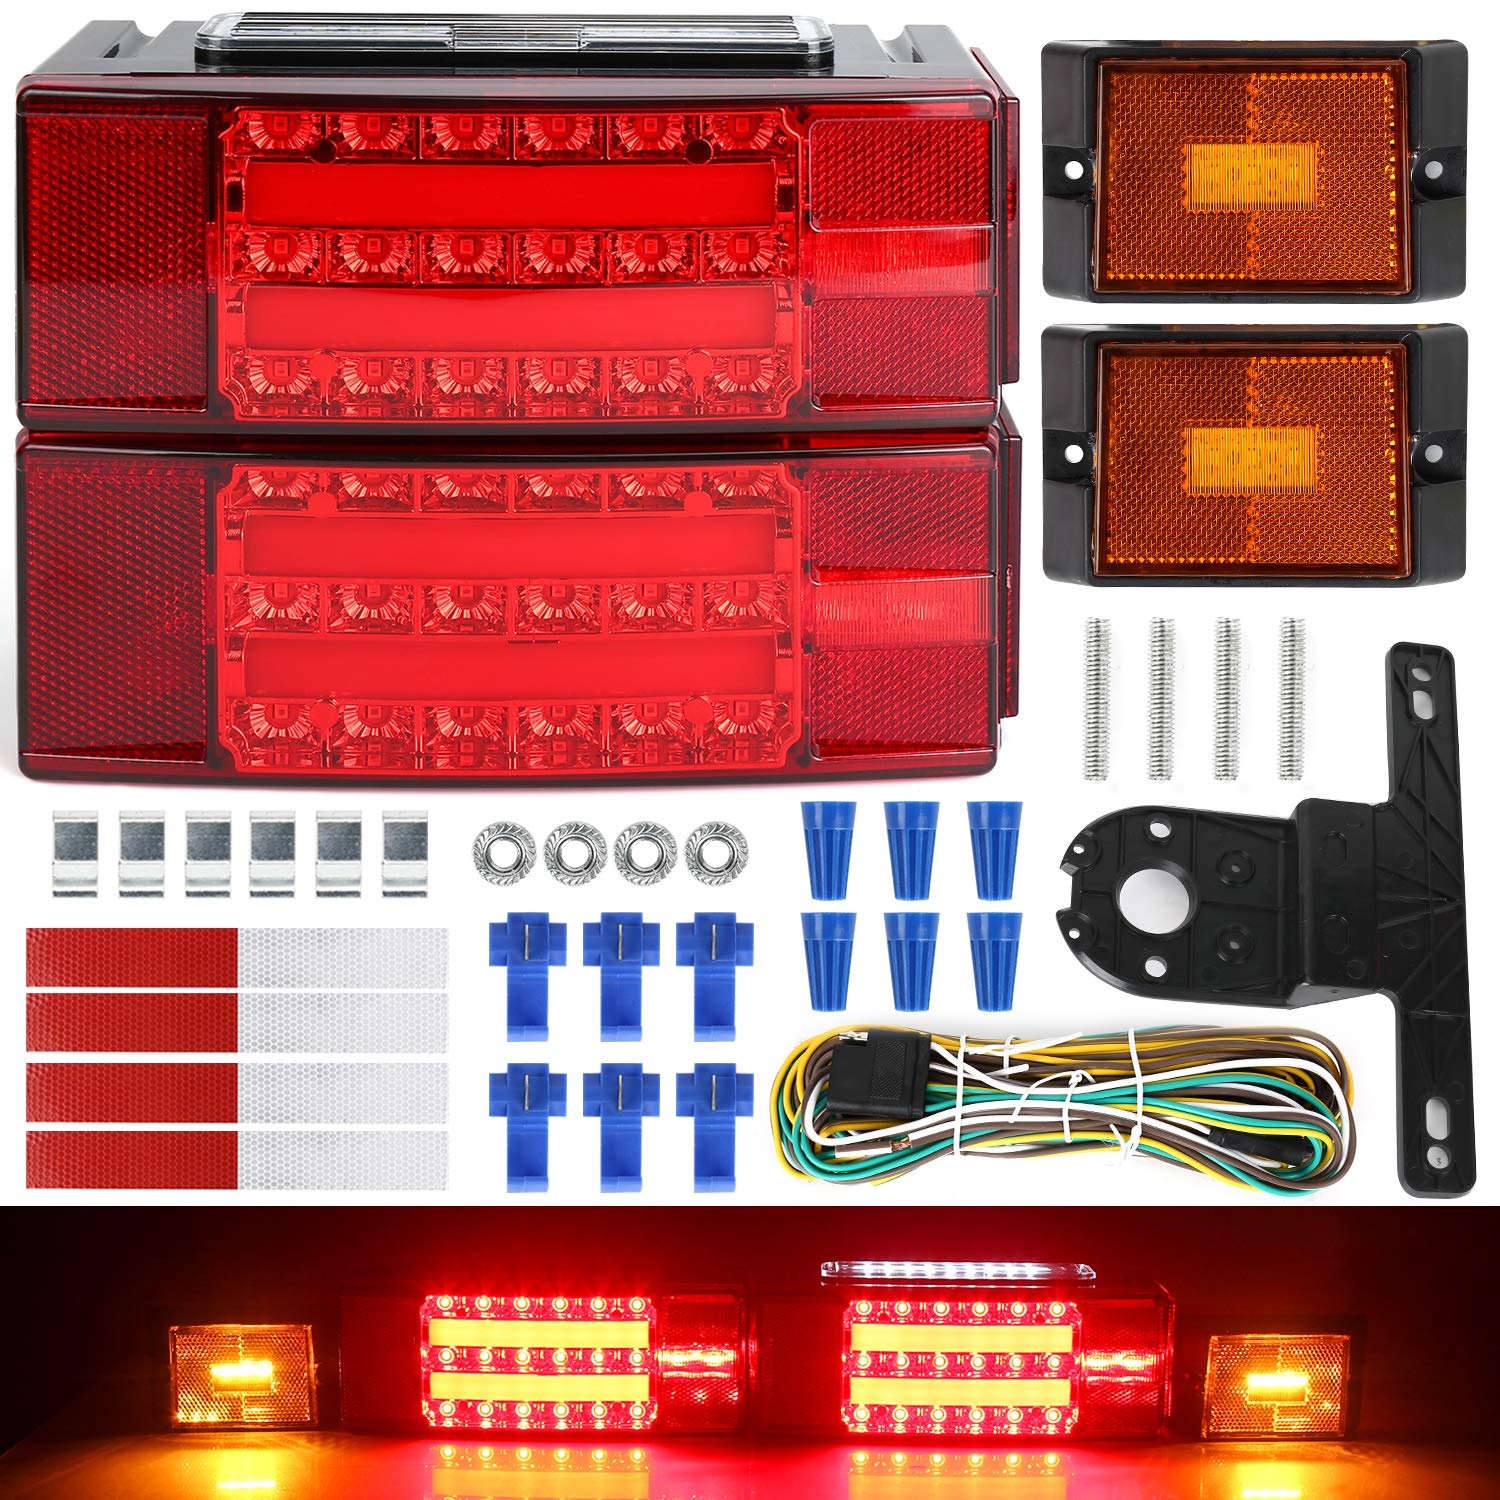 LINKITOM 2019 New Submersible LED Trailer Light Kit, Super Bright Brake Stop Turn Tail License Lights for Camper Truck RV Boat Snowmobile Under 80'' Inch by LINKITOM